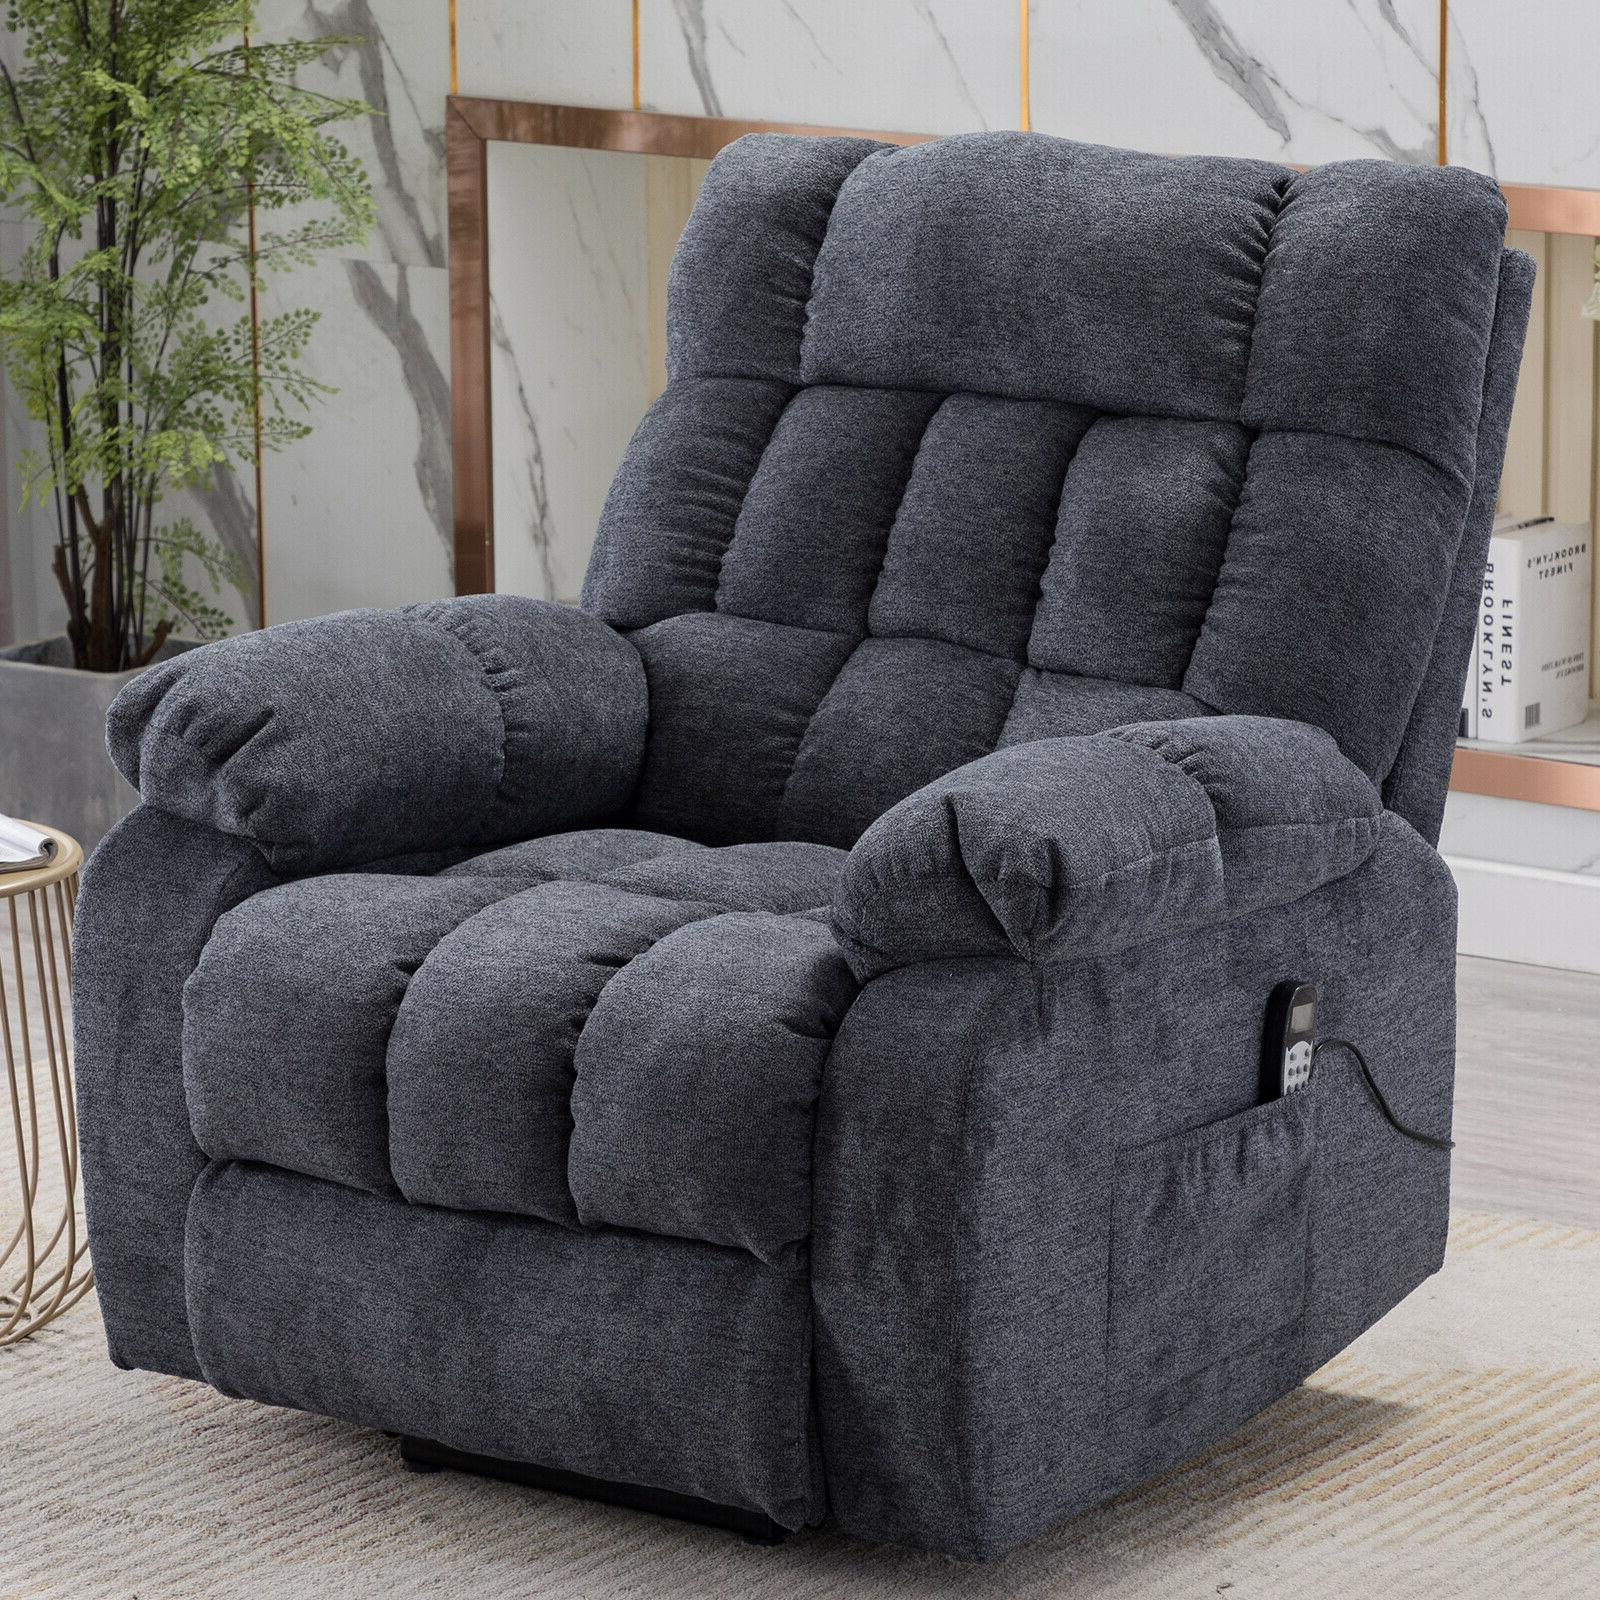 Electric Massage Chair Lift Recliner Sofa for